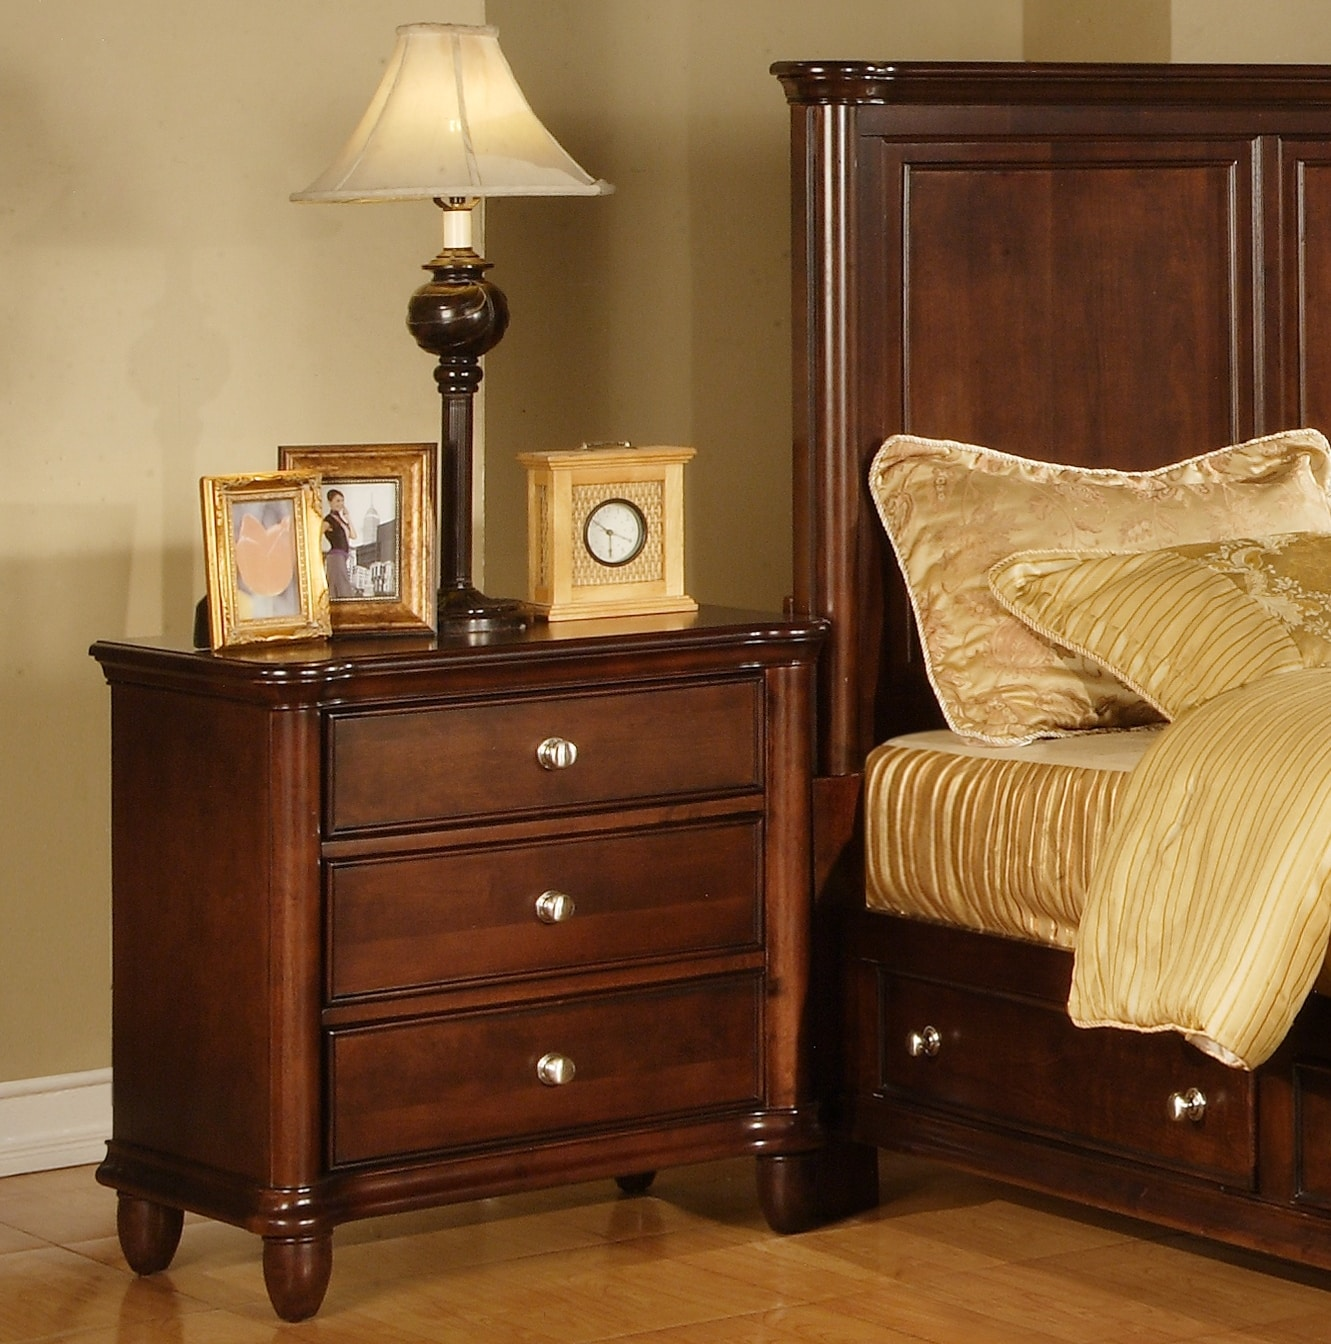 Hawthorne 3 drawer nightstand overstock shopping great - Hawthorne bedroom furniture collection ...